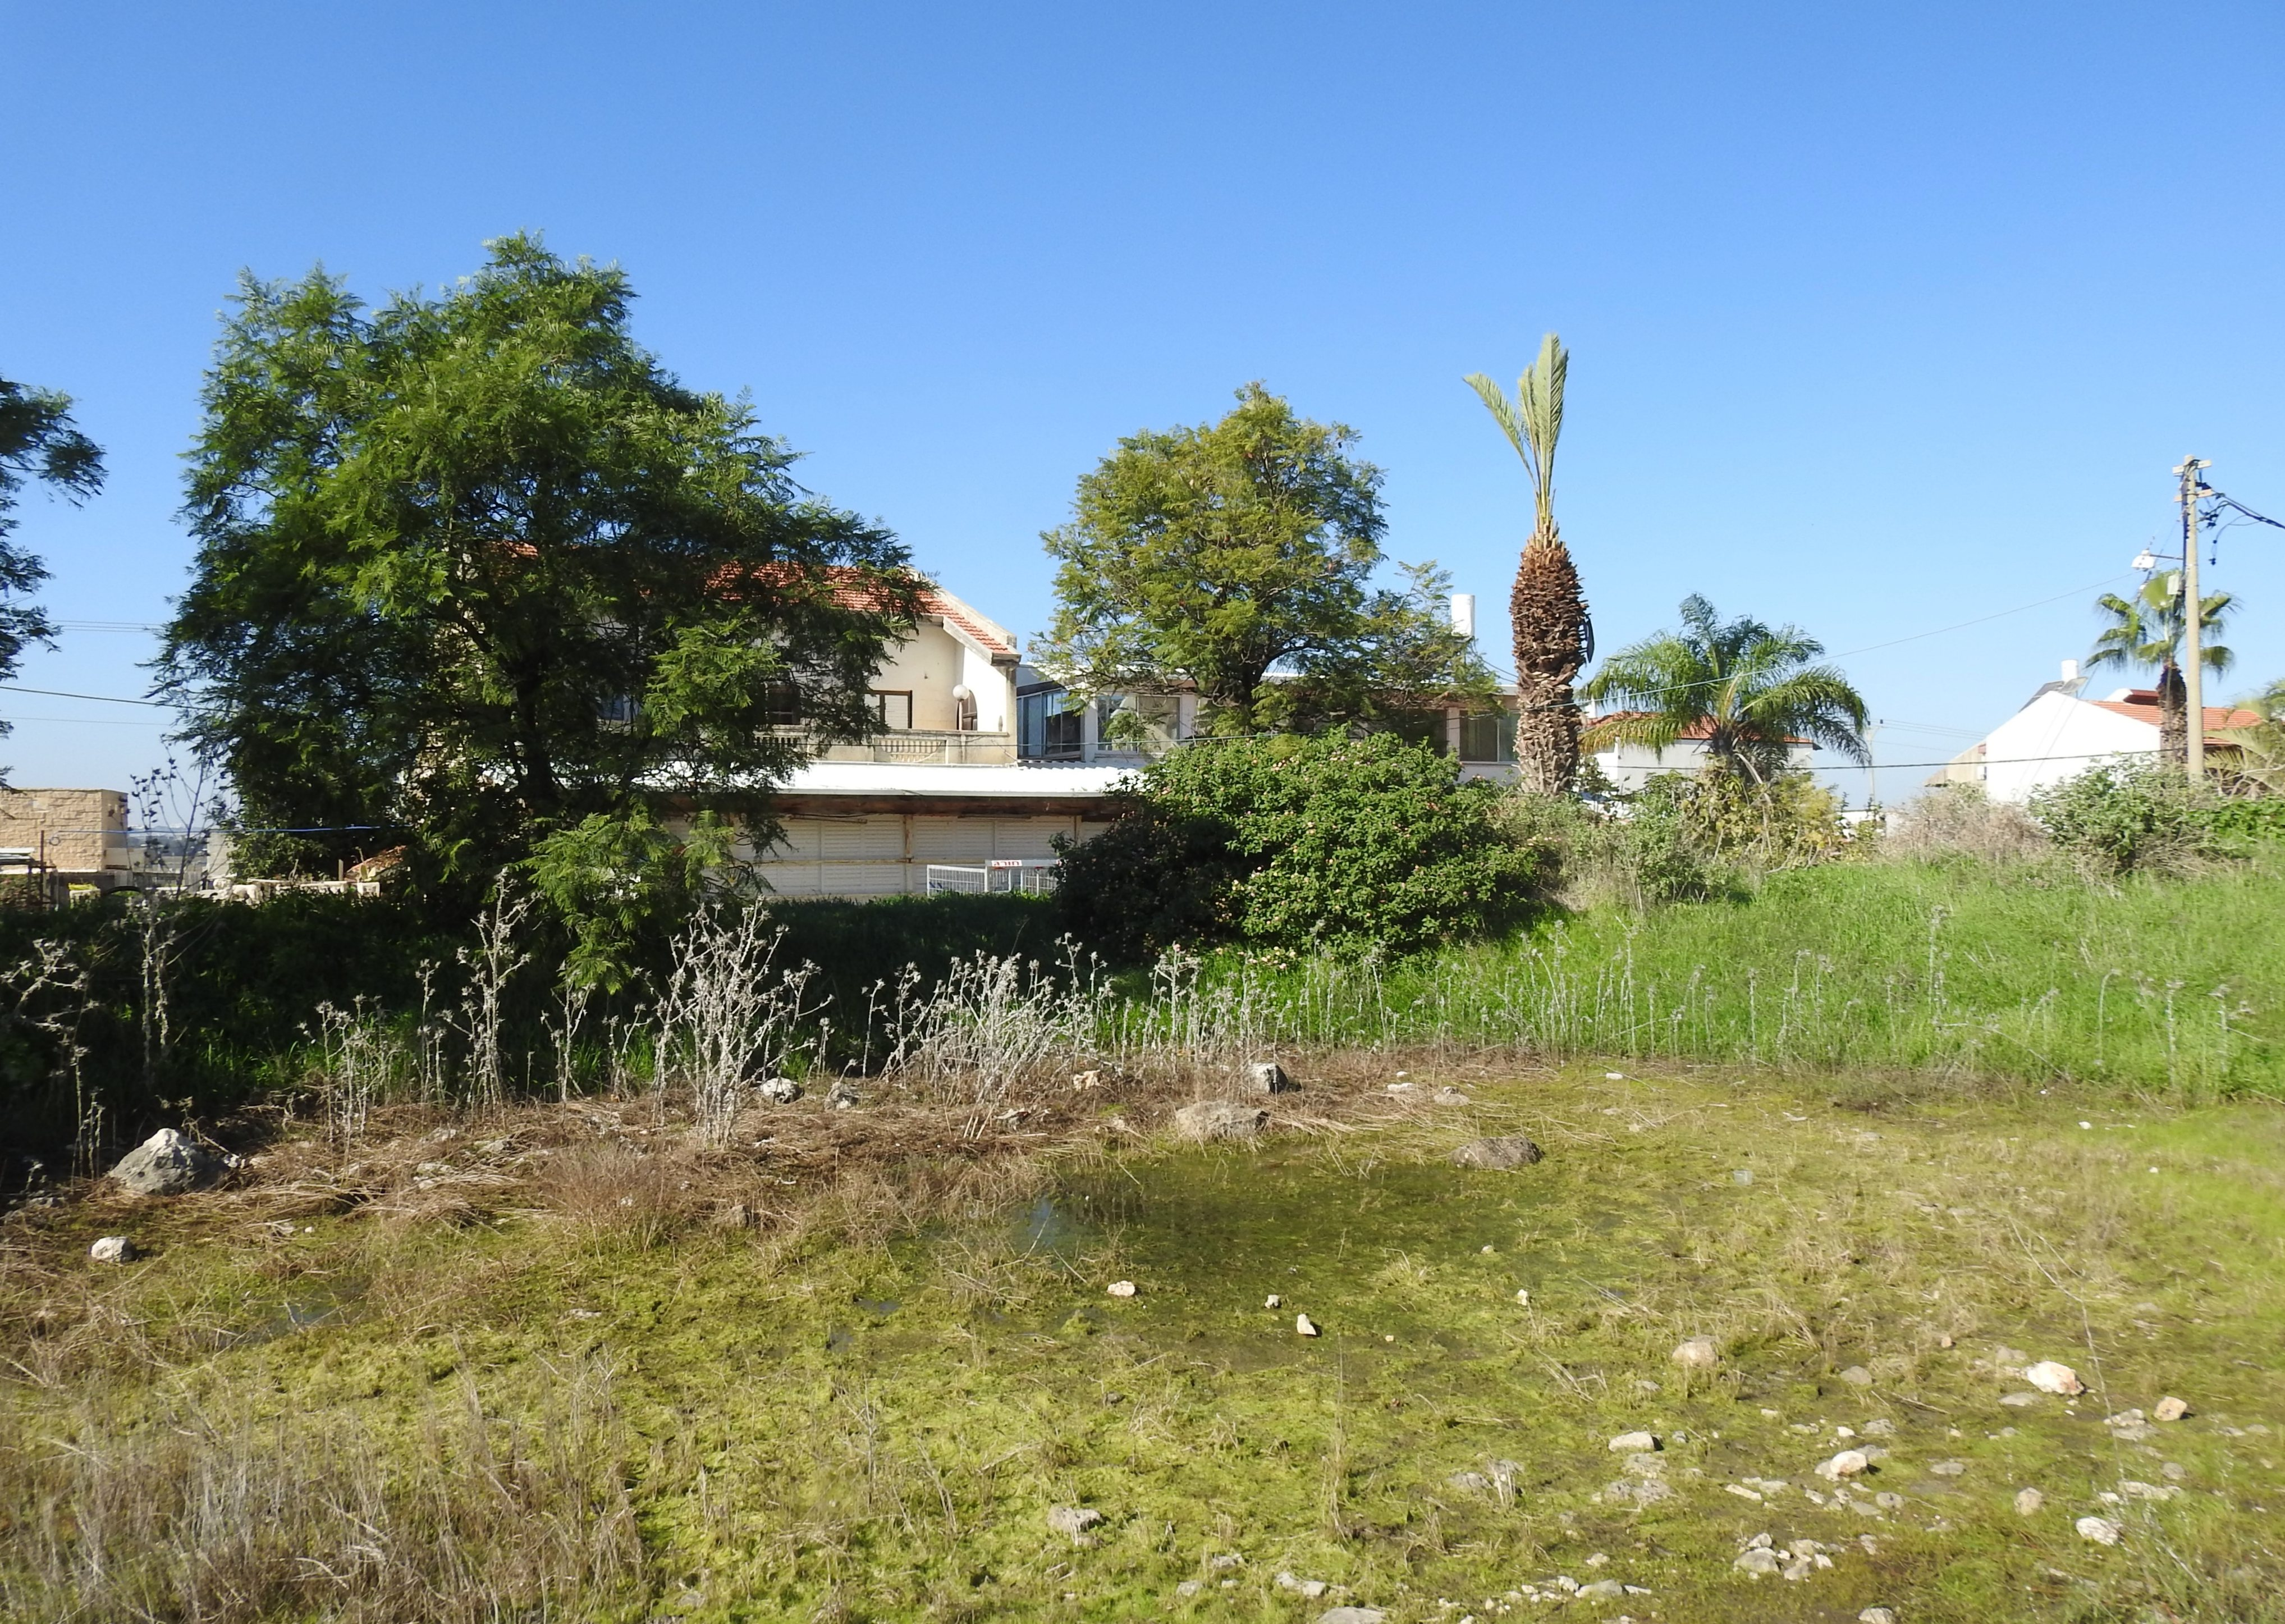 Neglected vernal pool in Rosh HaAyin